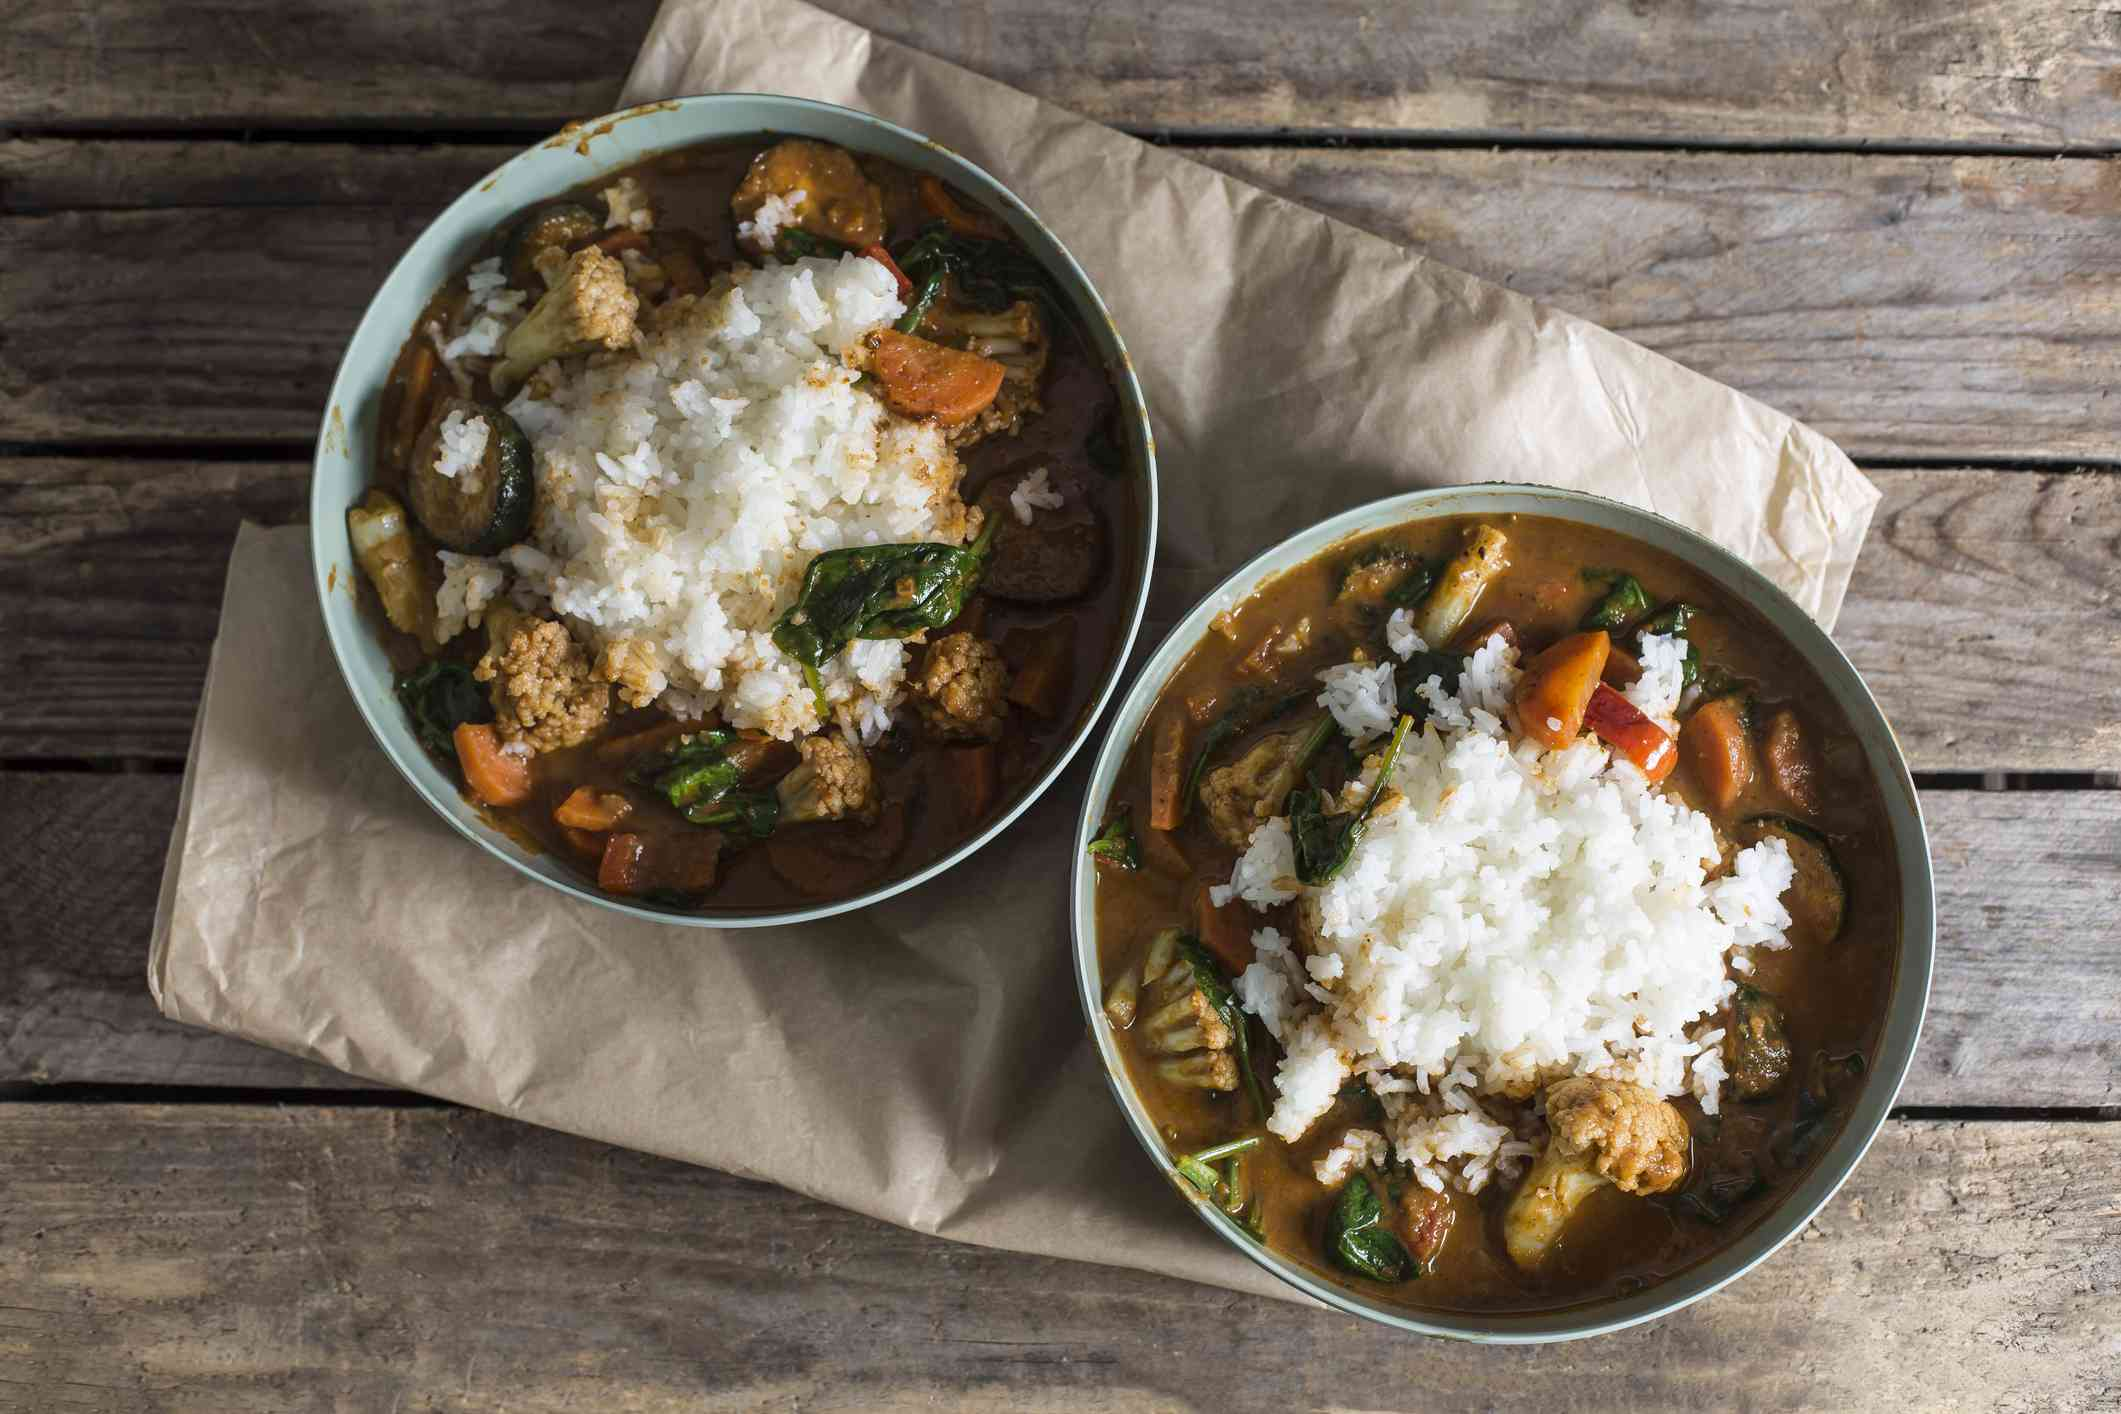 Two bowls of Garam Masala vegetable curry dish with jasmine rice